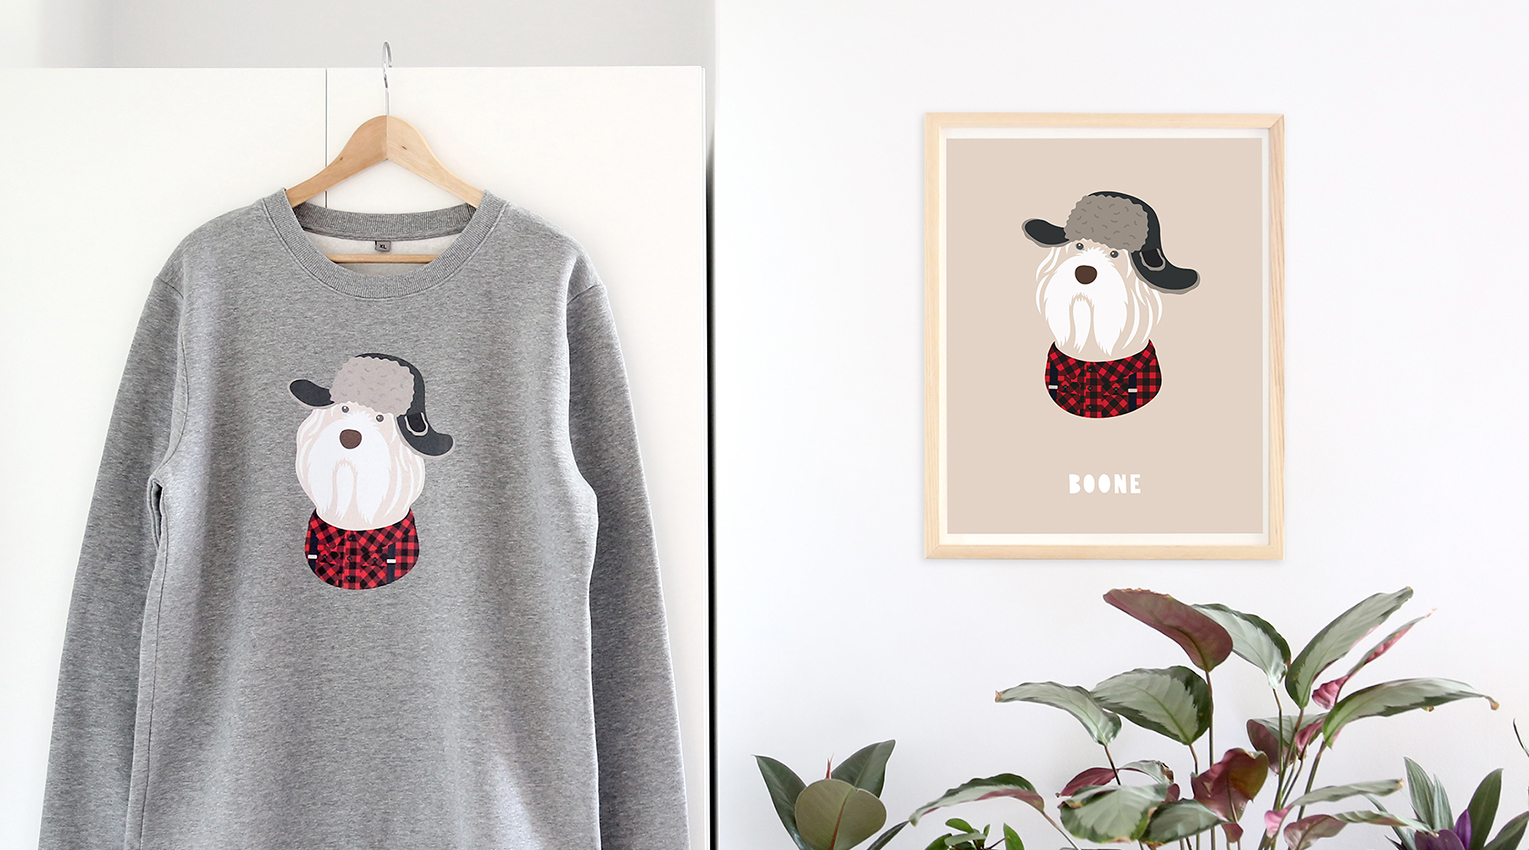 woofmodels-front-page-sweatshirt-artprint.jpg